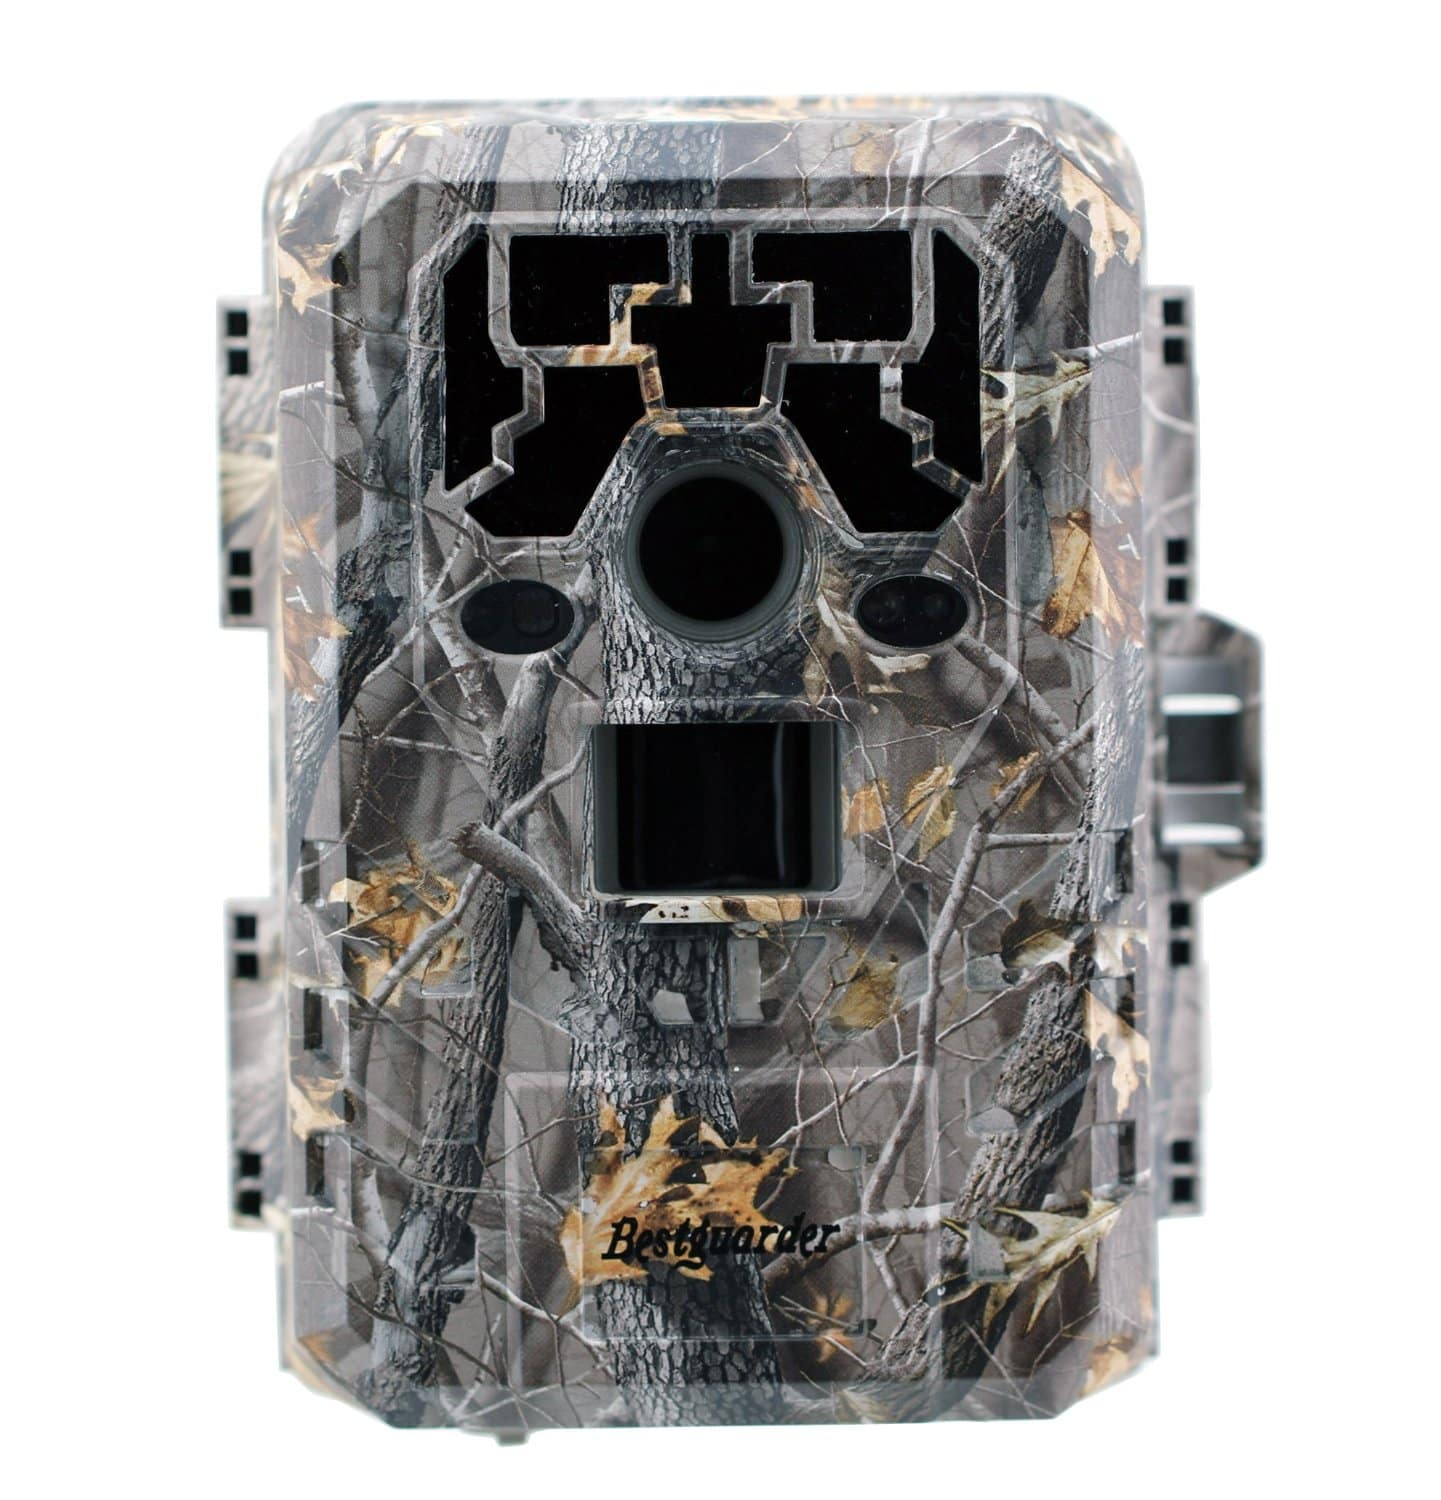 Bestguarder HD Waterproof IP66 Infrared Night Vision Game